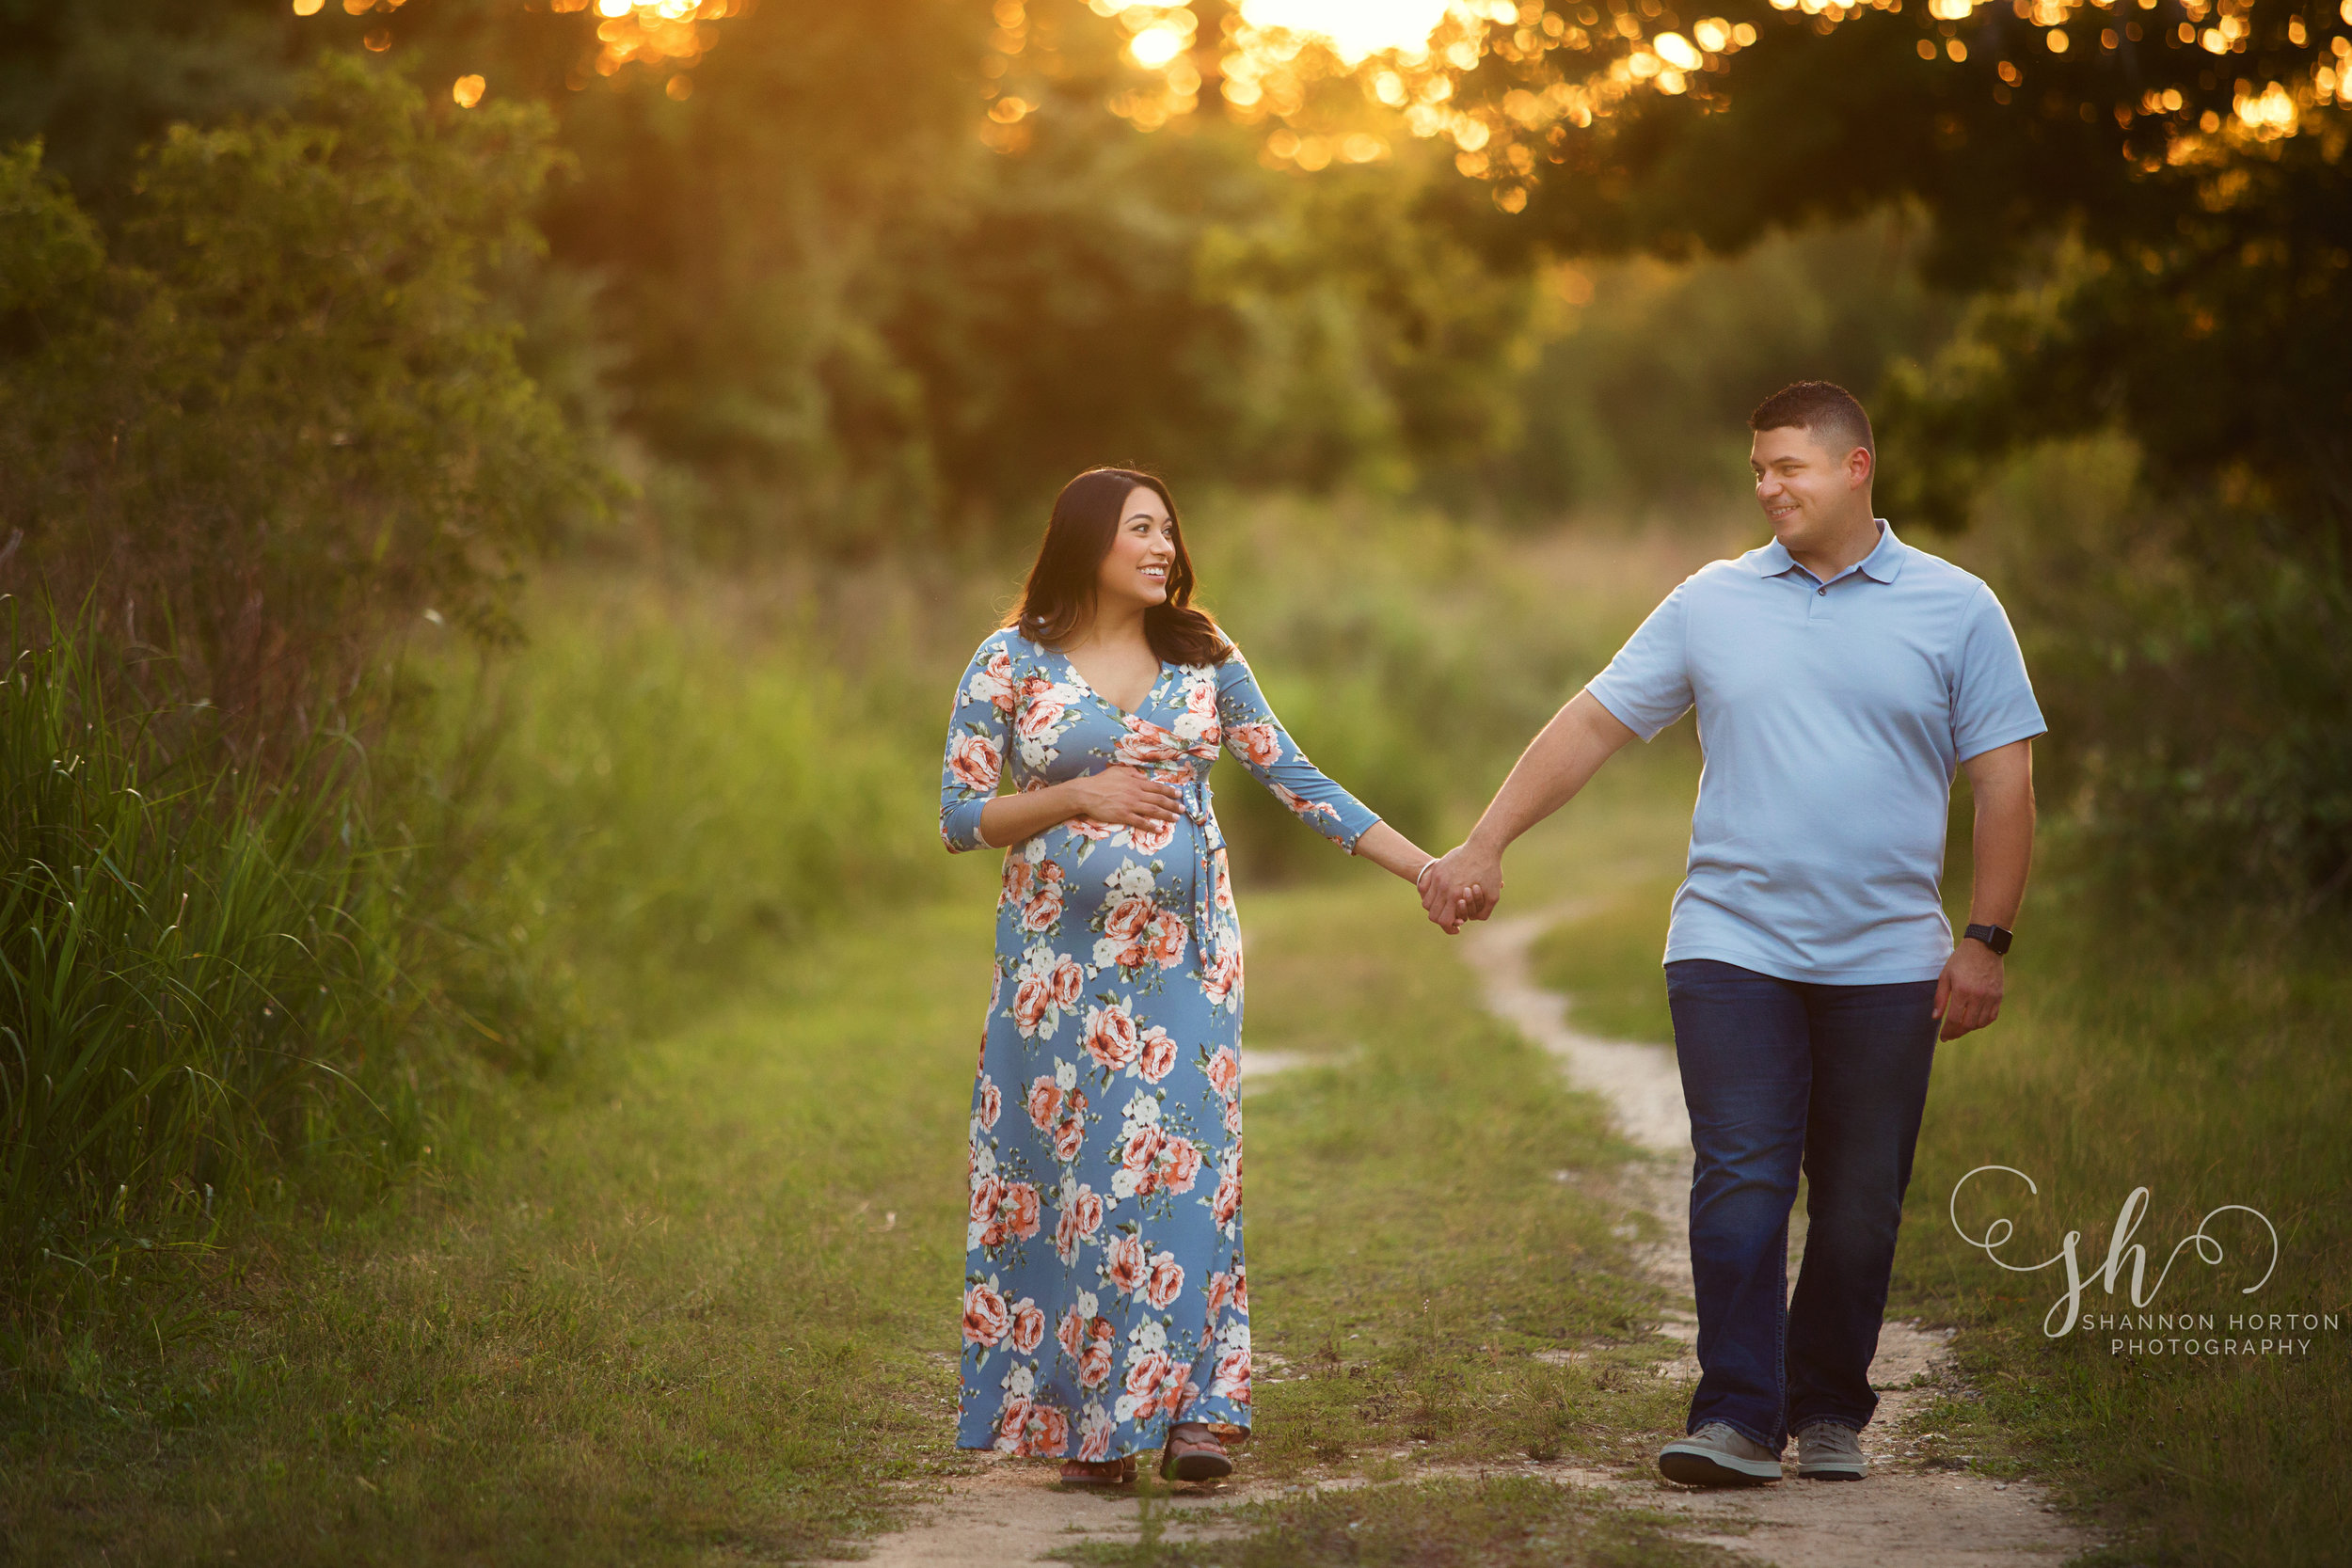 expecting-couple-walking-along-grassy-path